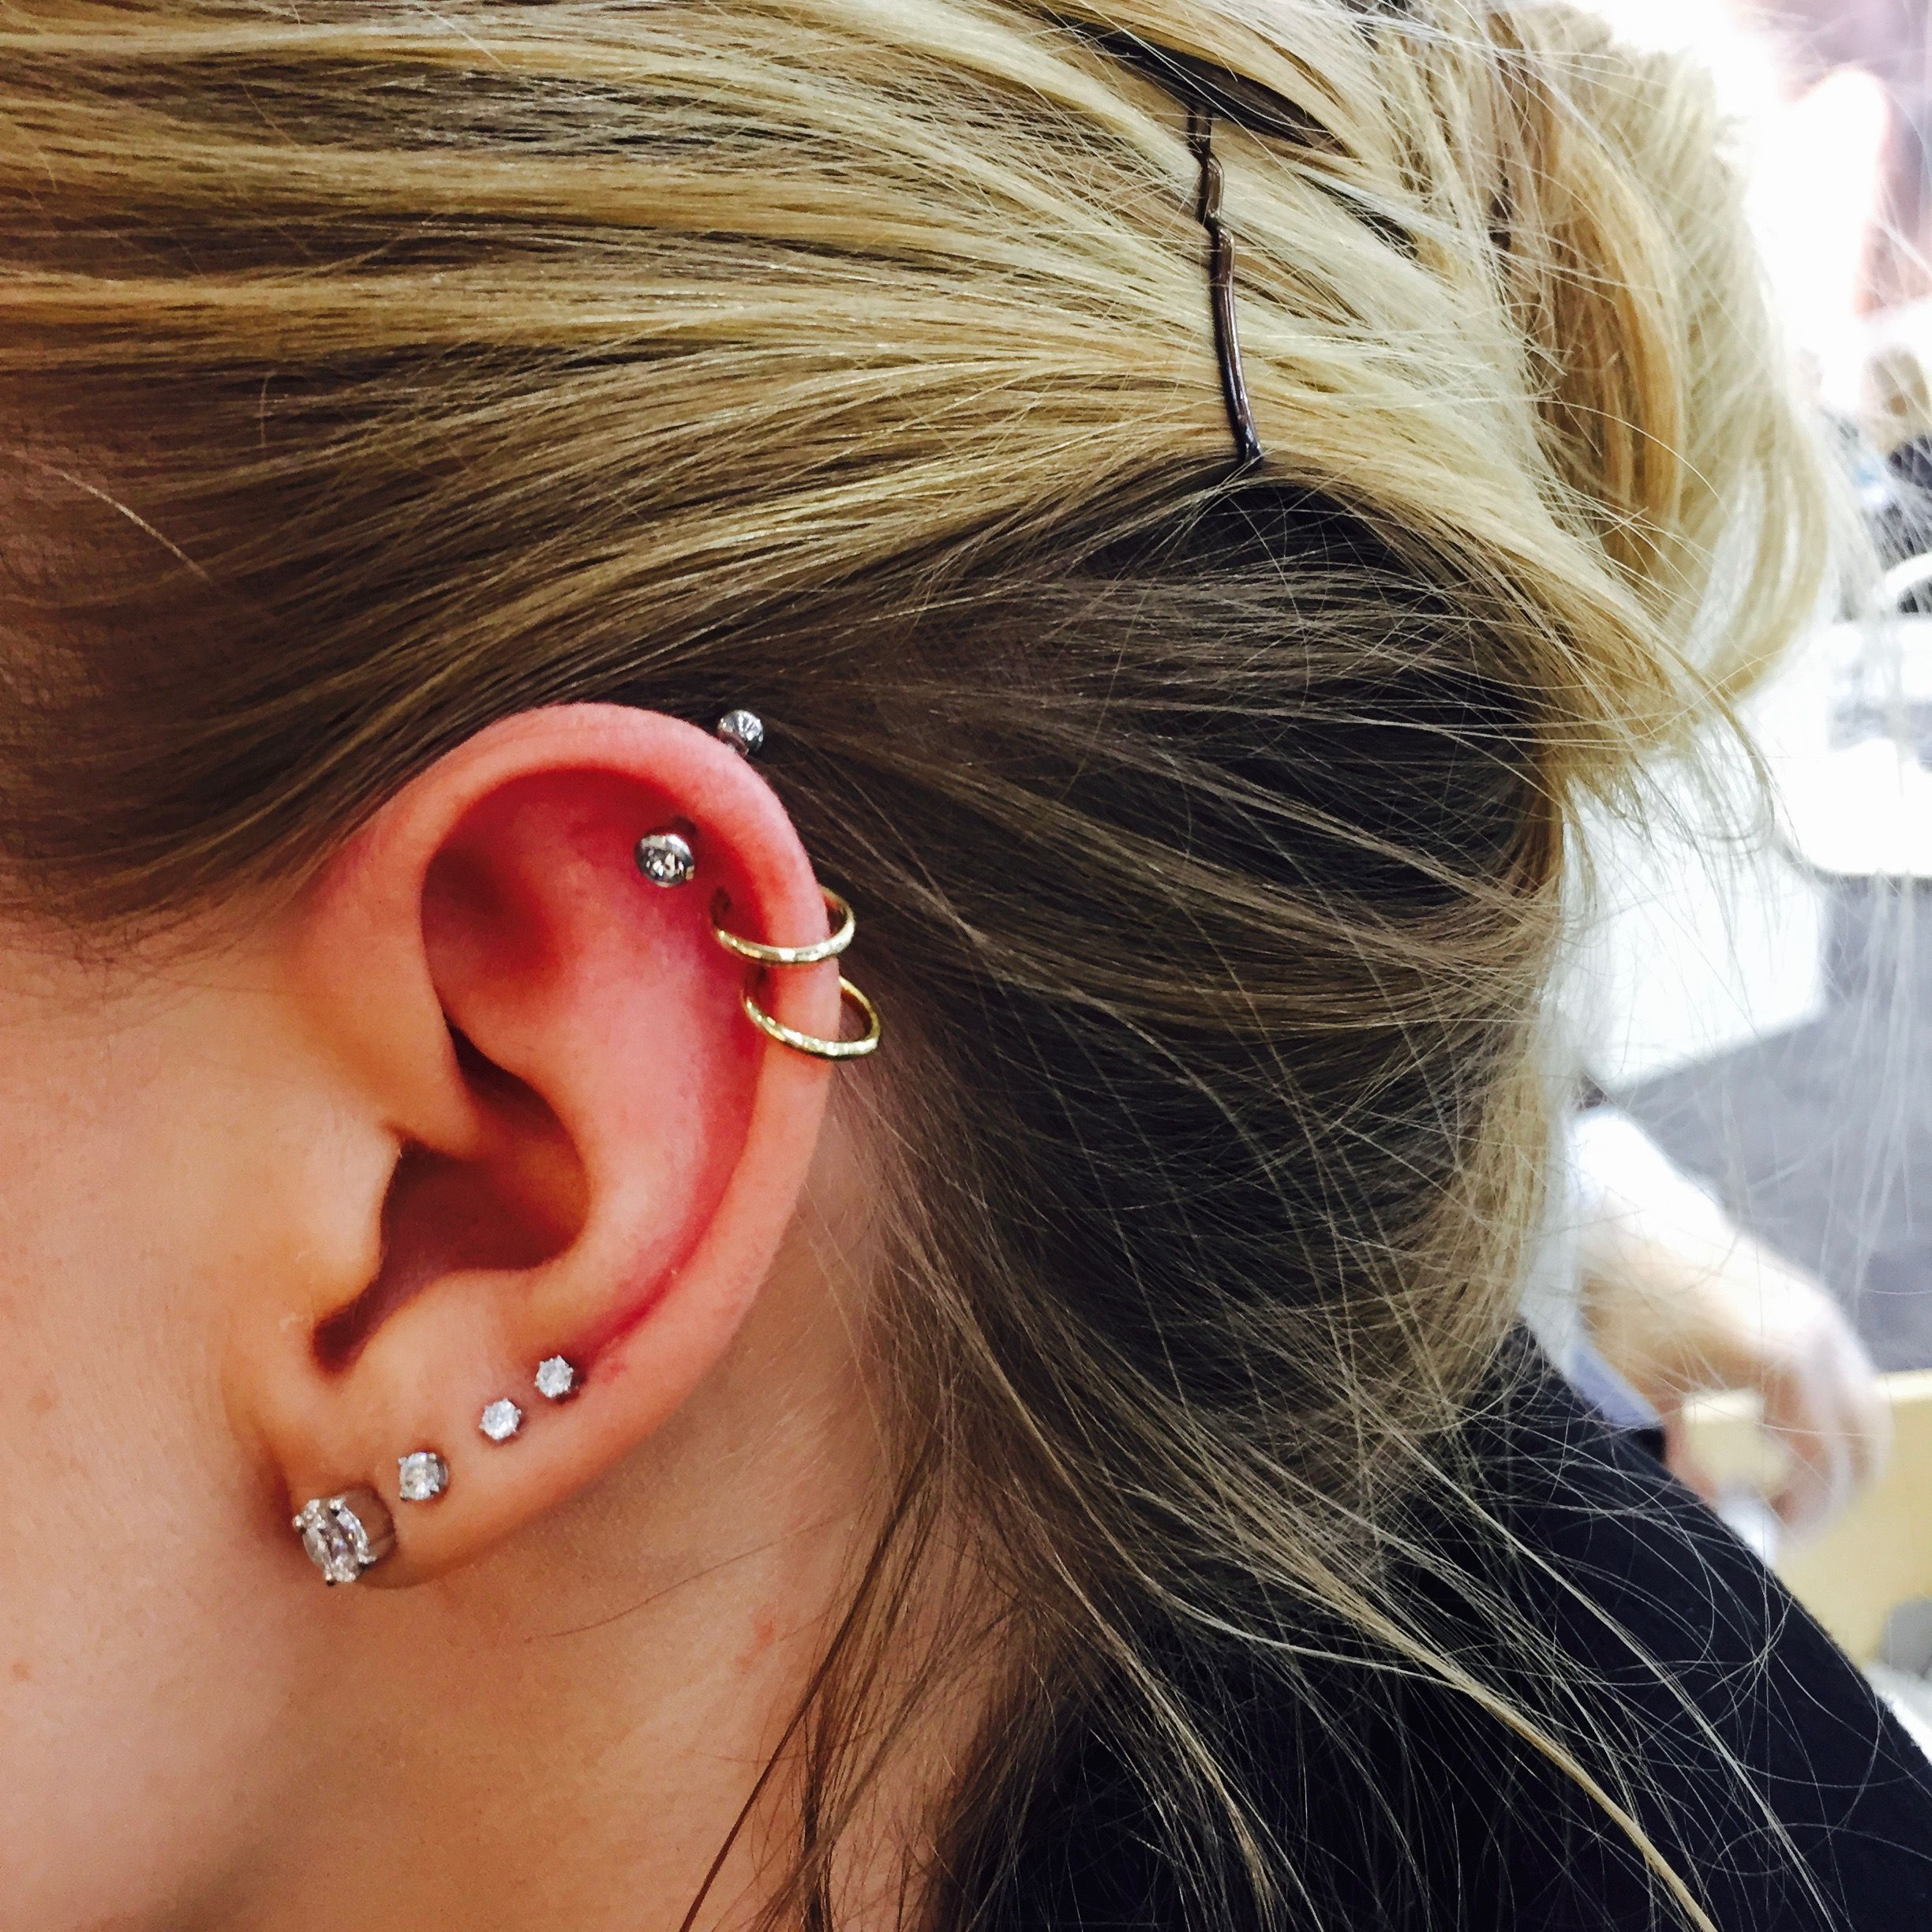 Bump after piercing  Beautiful ear adorned with four lobe and three helix piercings the